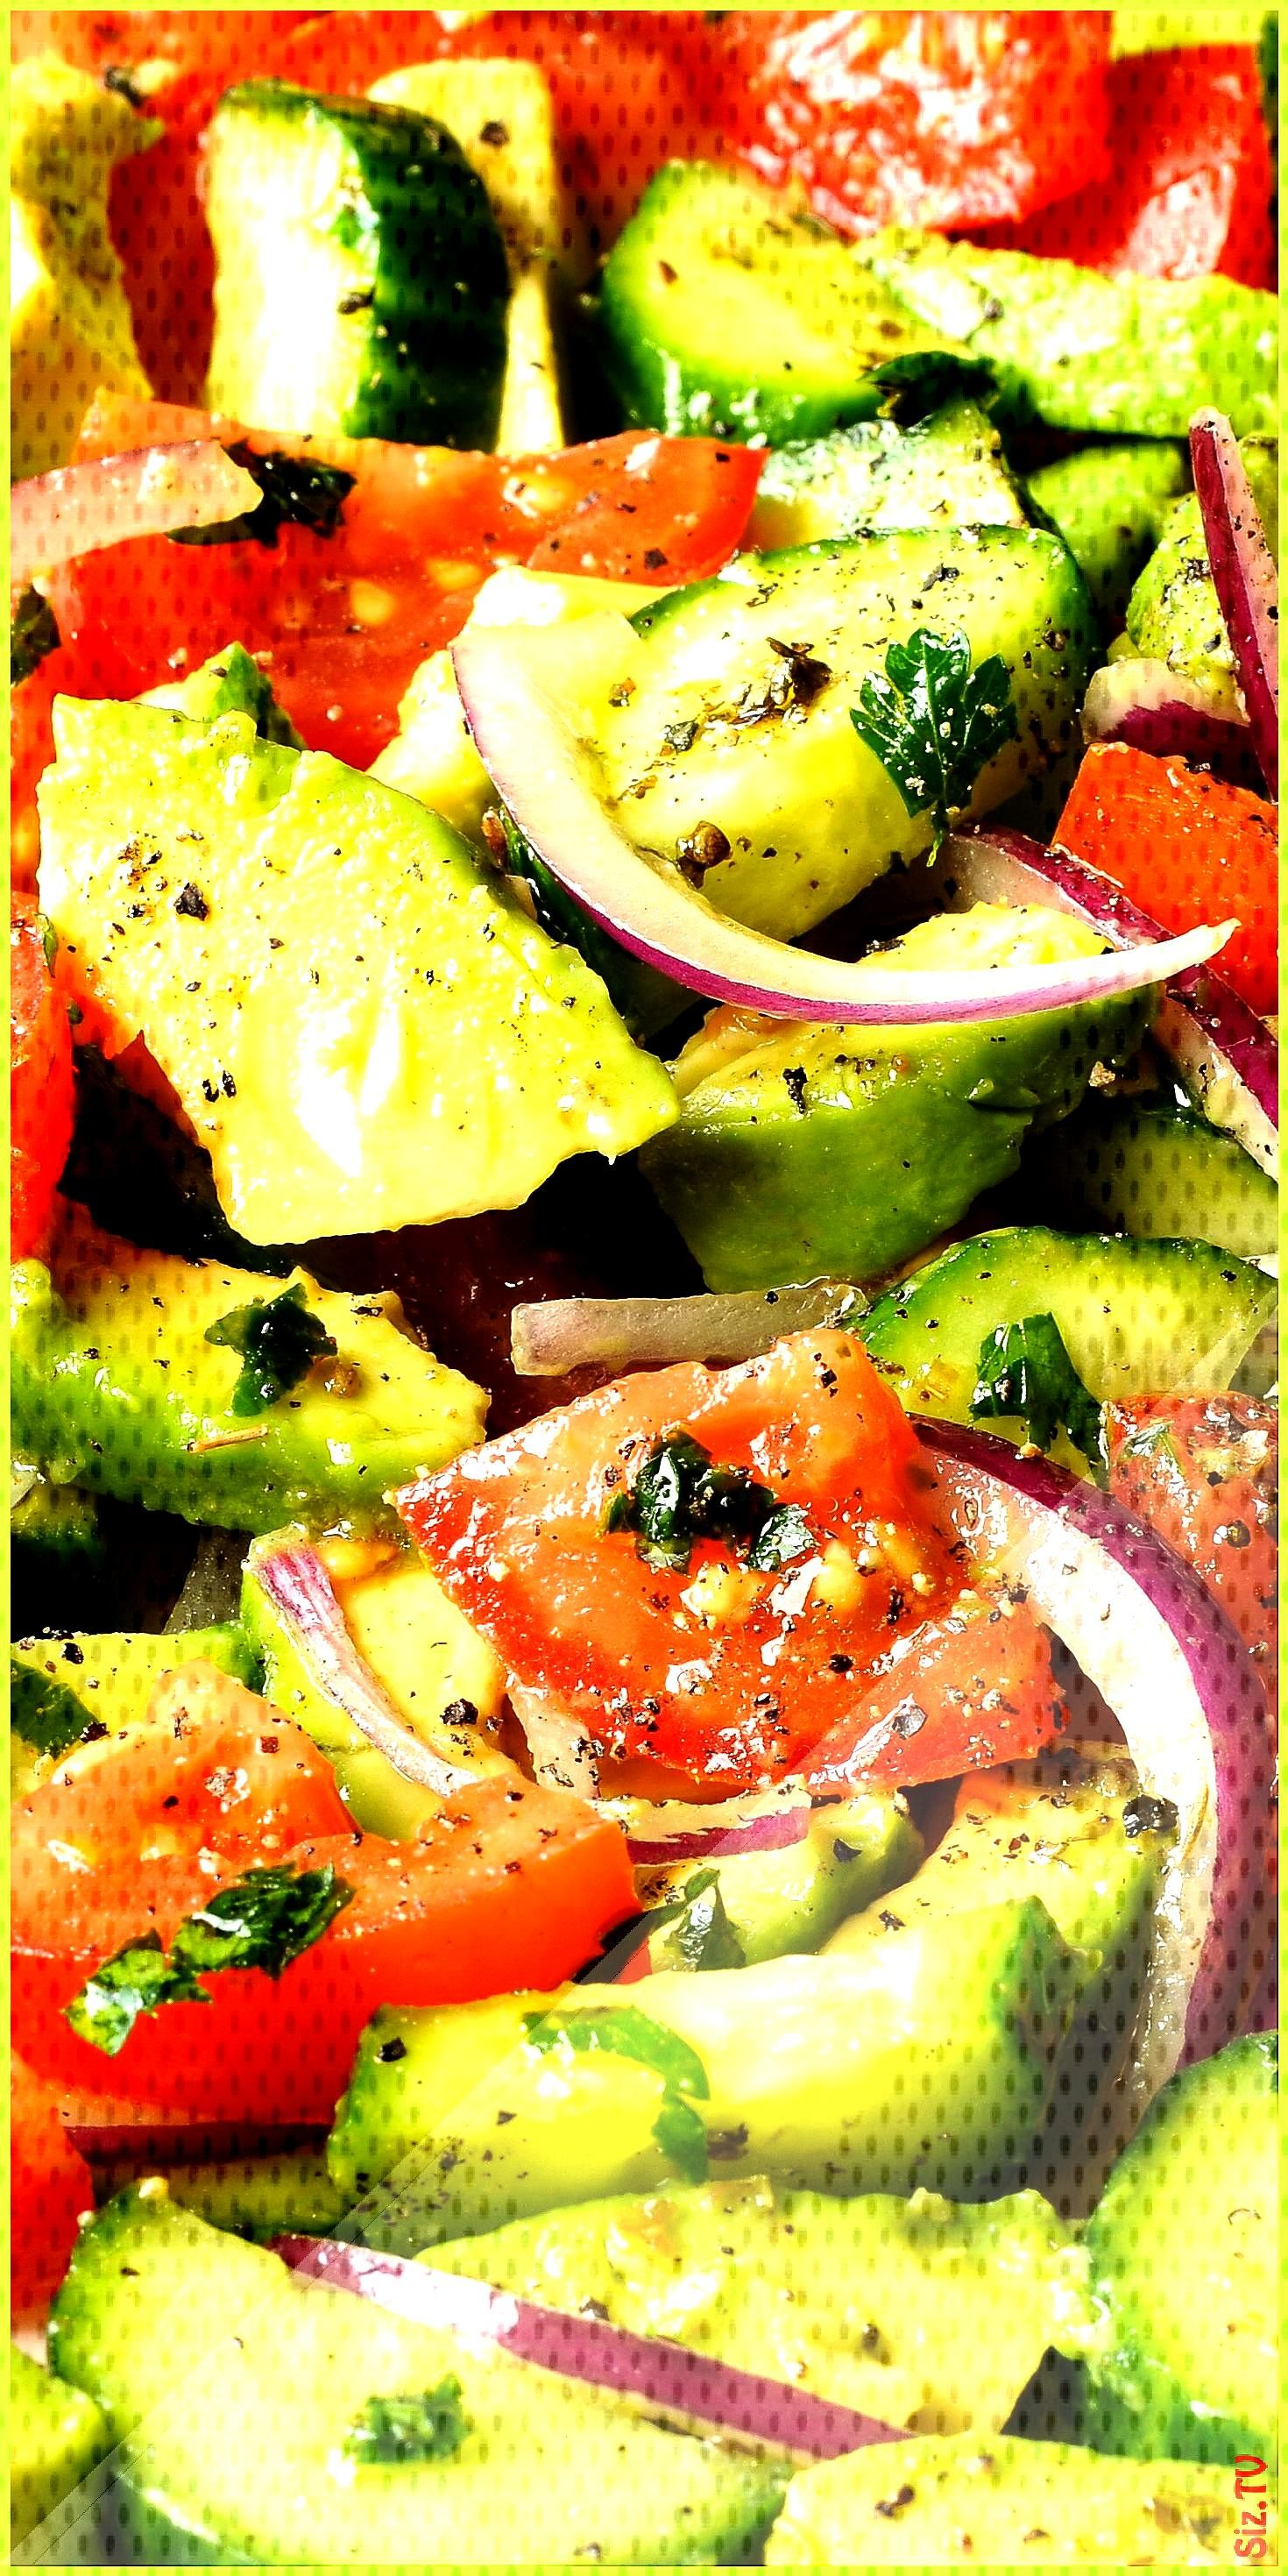 Cucumber tomato salad with avocado Cucumber tomato salad with avocado Karottenkanone crazycat66666